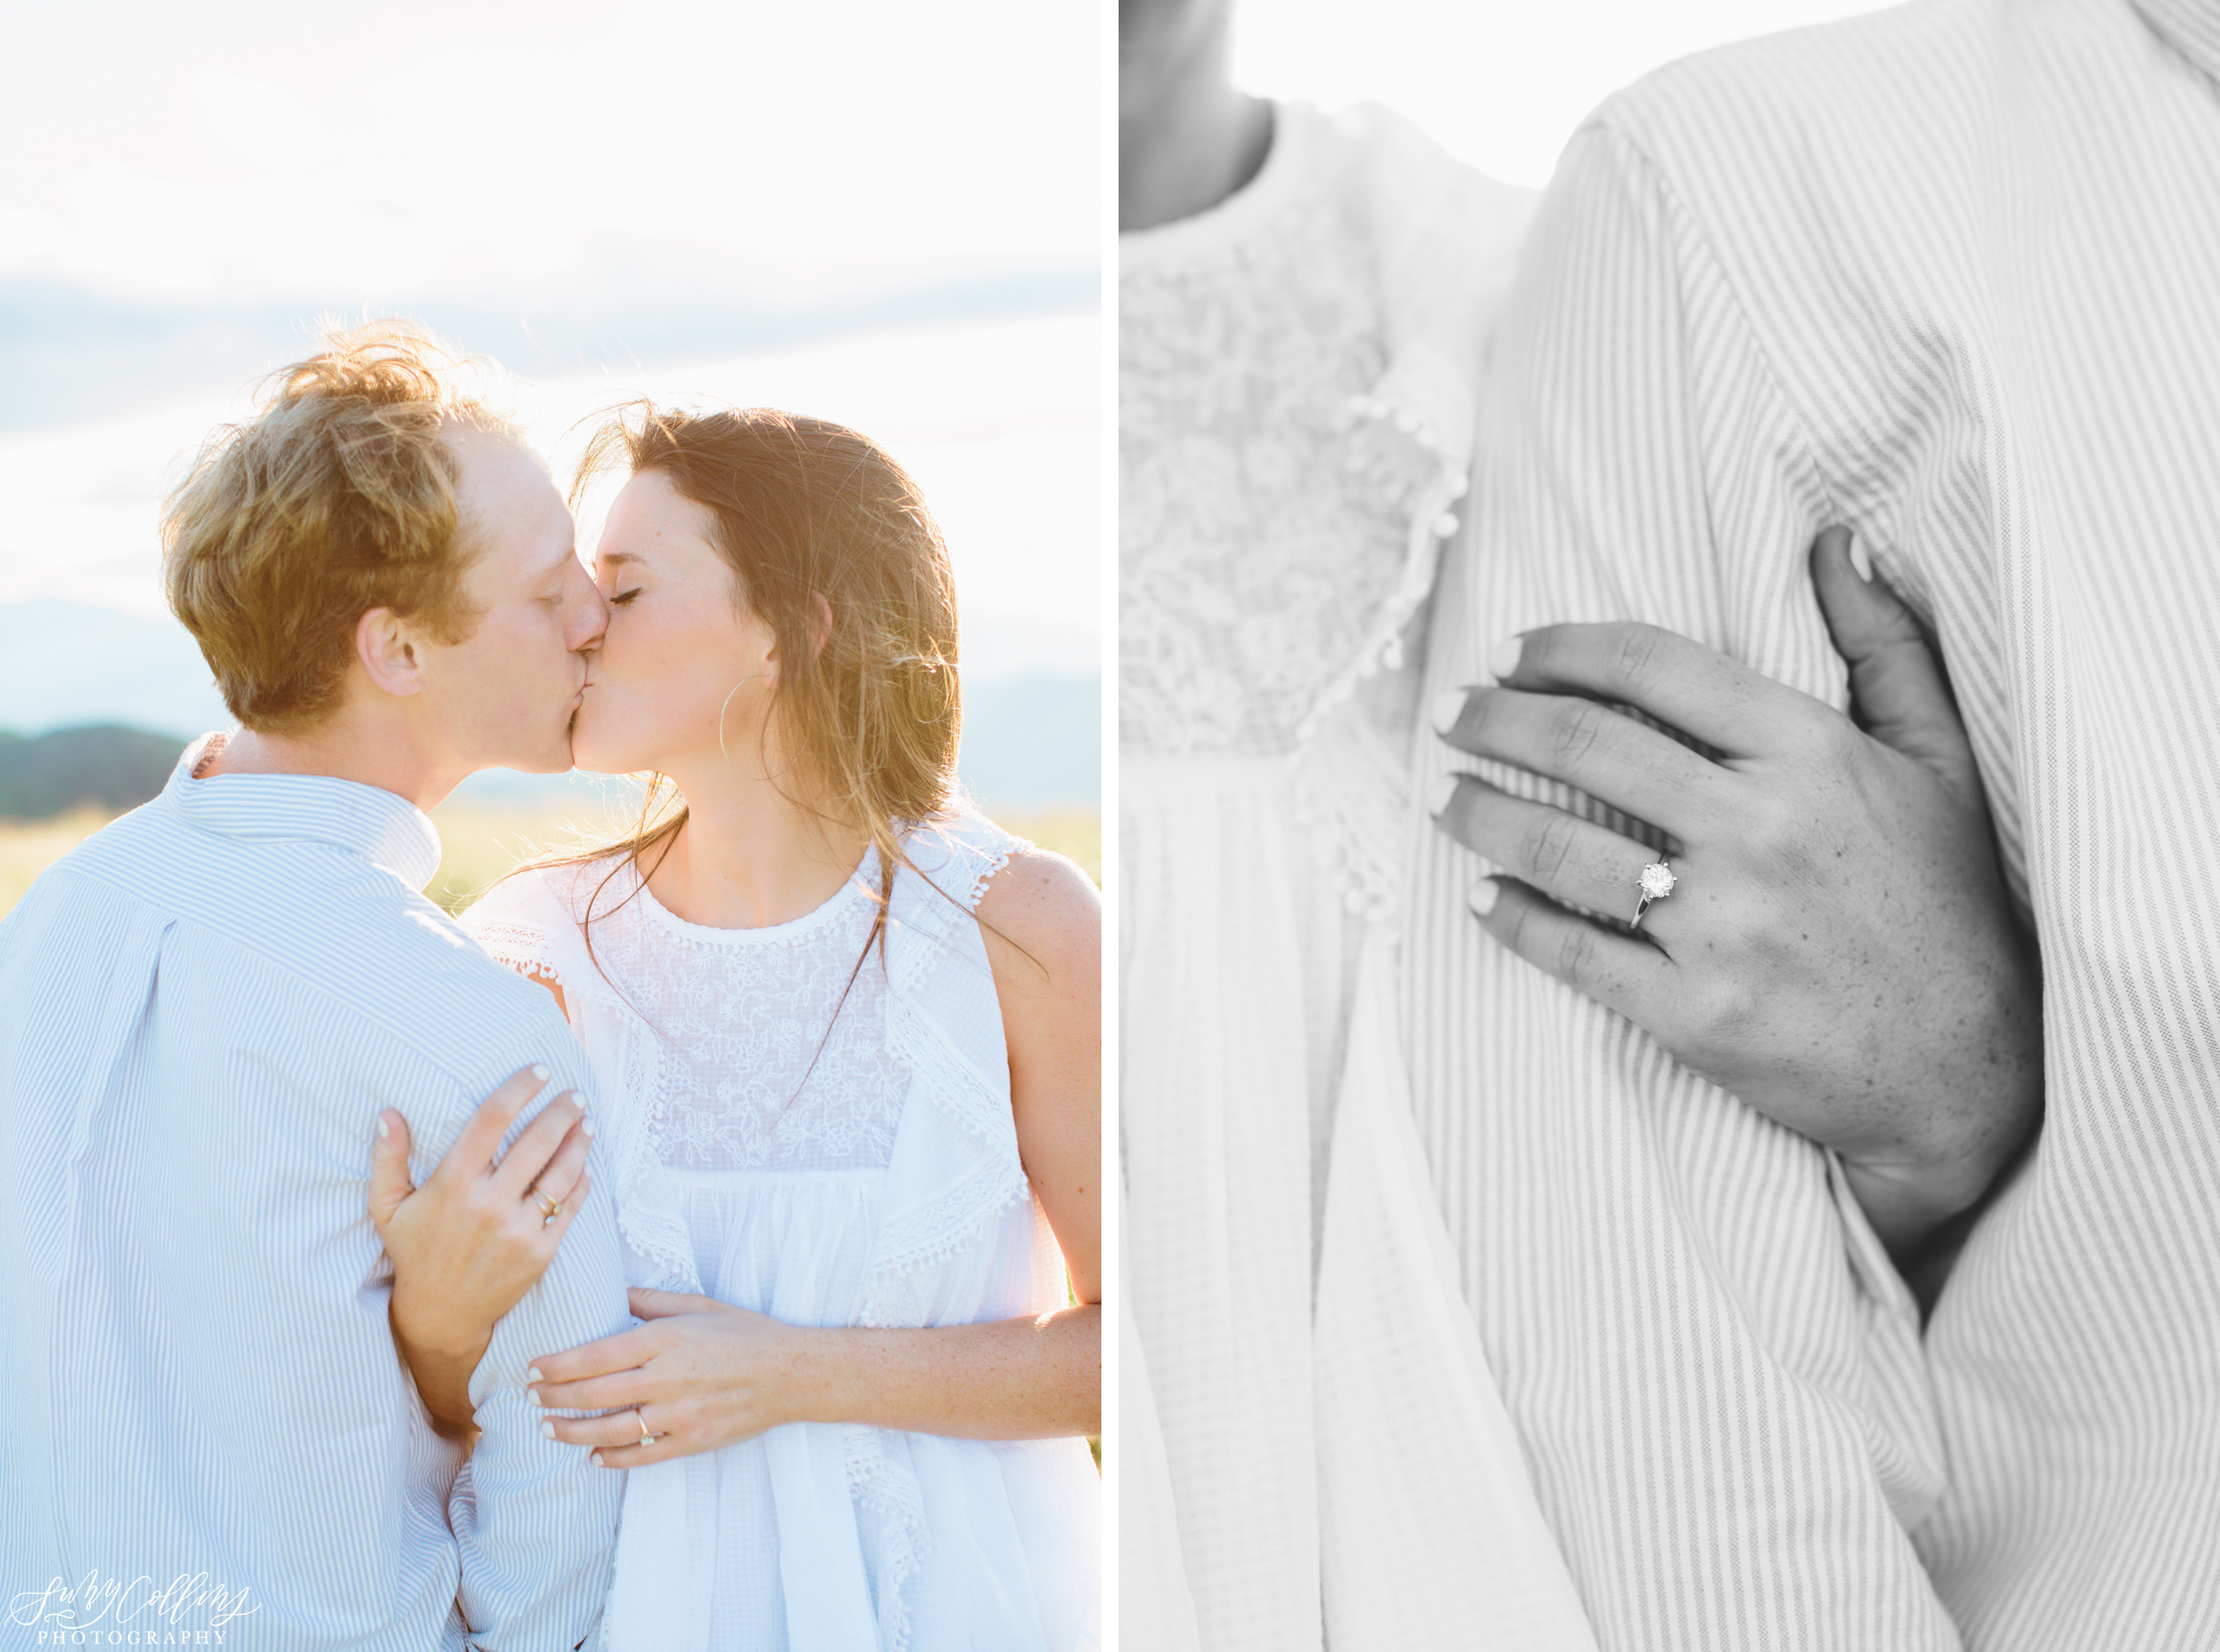 poses, couples, outdoor, max patch, Knoxville, Tennessee, engagement, sunset, evening, love, vibrant, colorful, bright, creative, romantic, natural, light and airy, natural light, passion, inspiration, intimate, outfits, fountain, woods, field, sunrise, windy, North Carolina, rings kiss, black and white